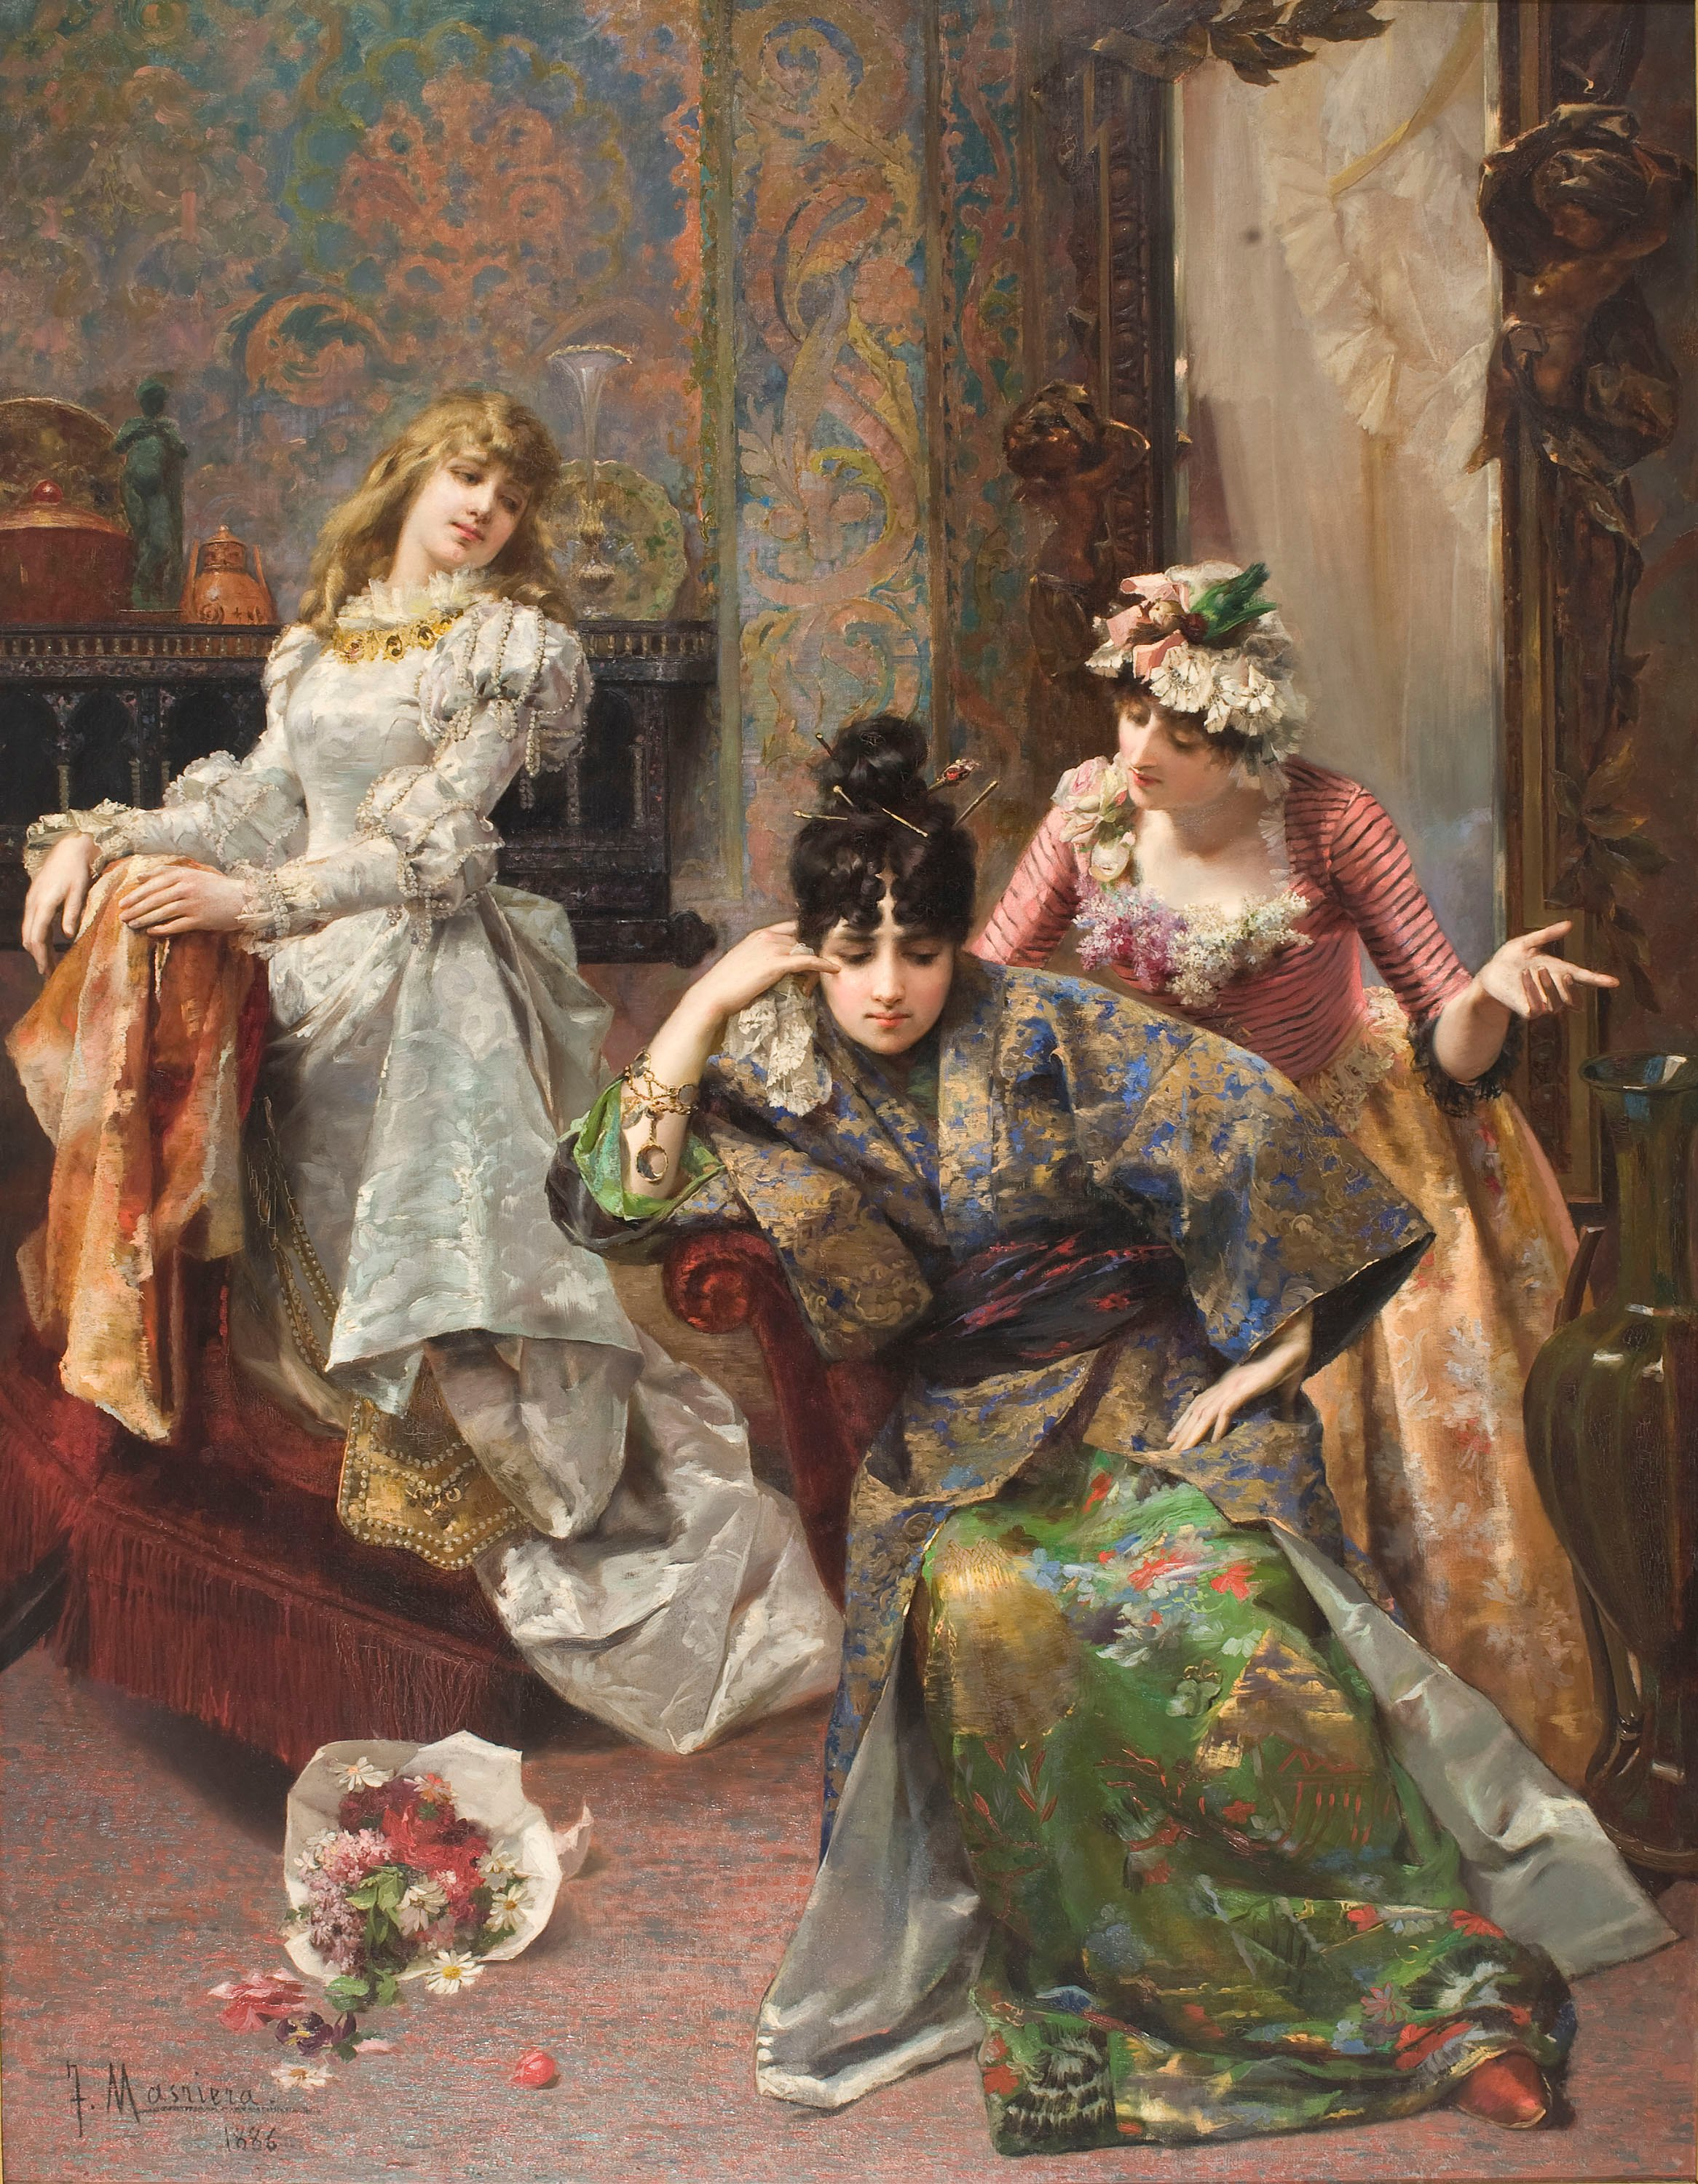 Francesc Masriera - After the Ball - 1886